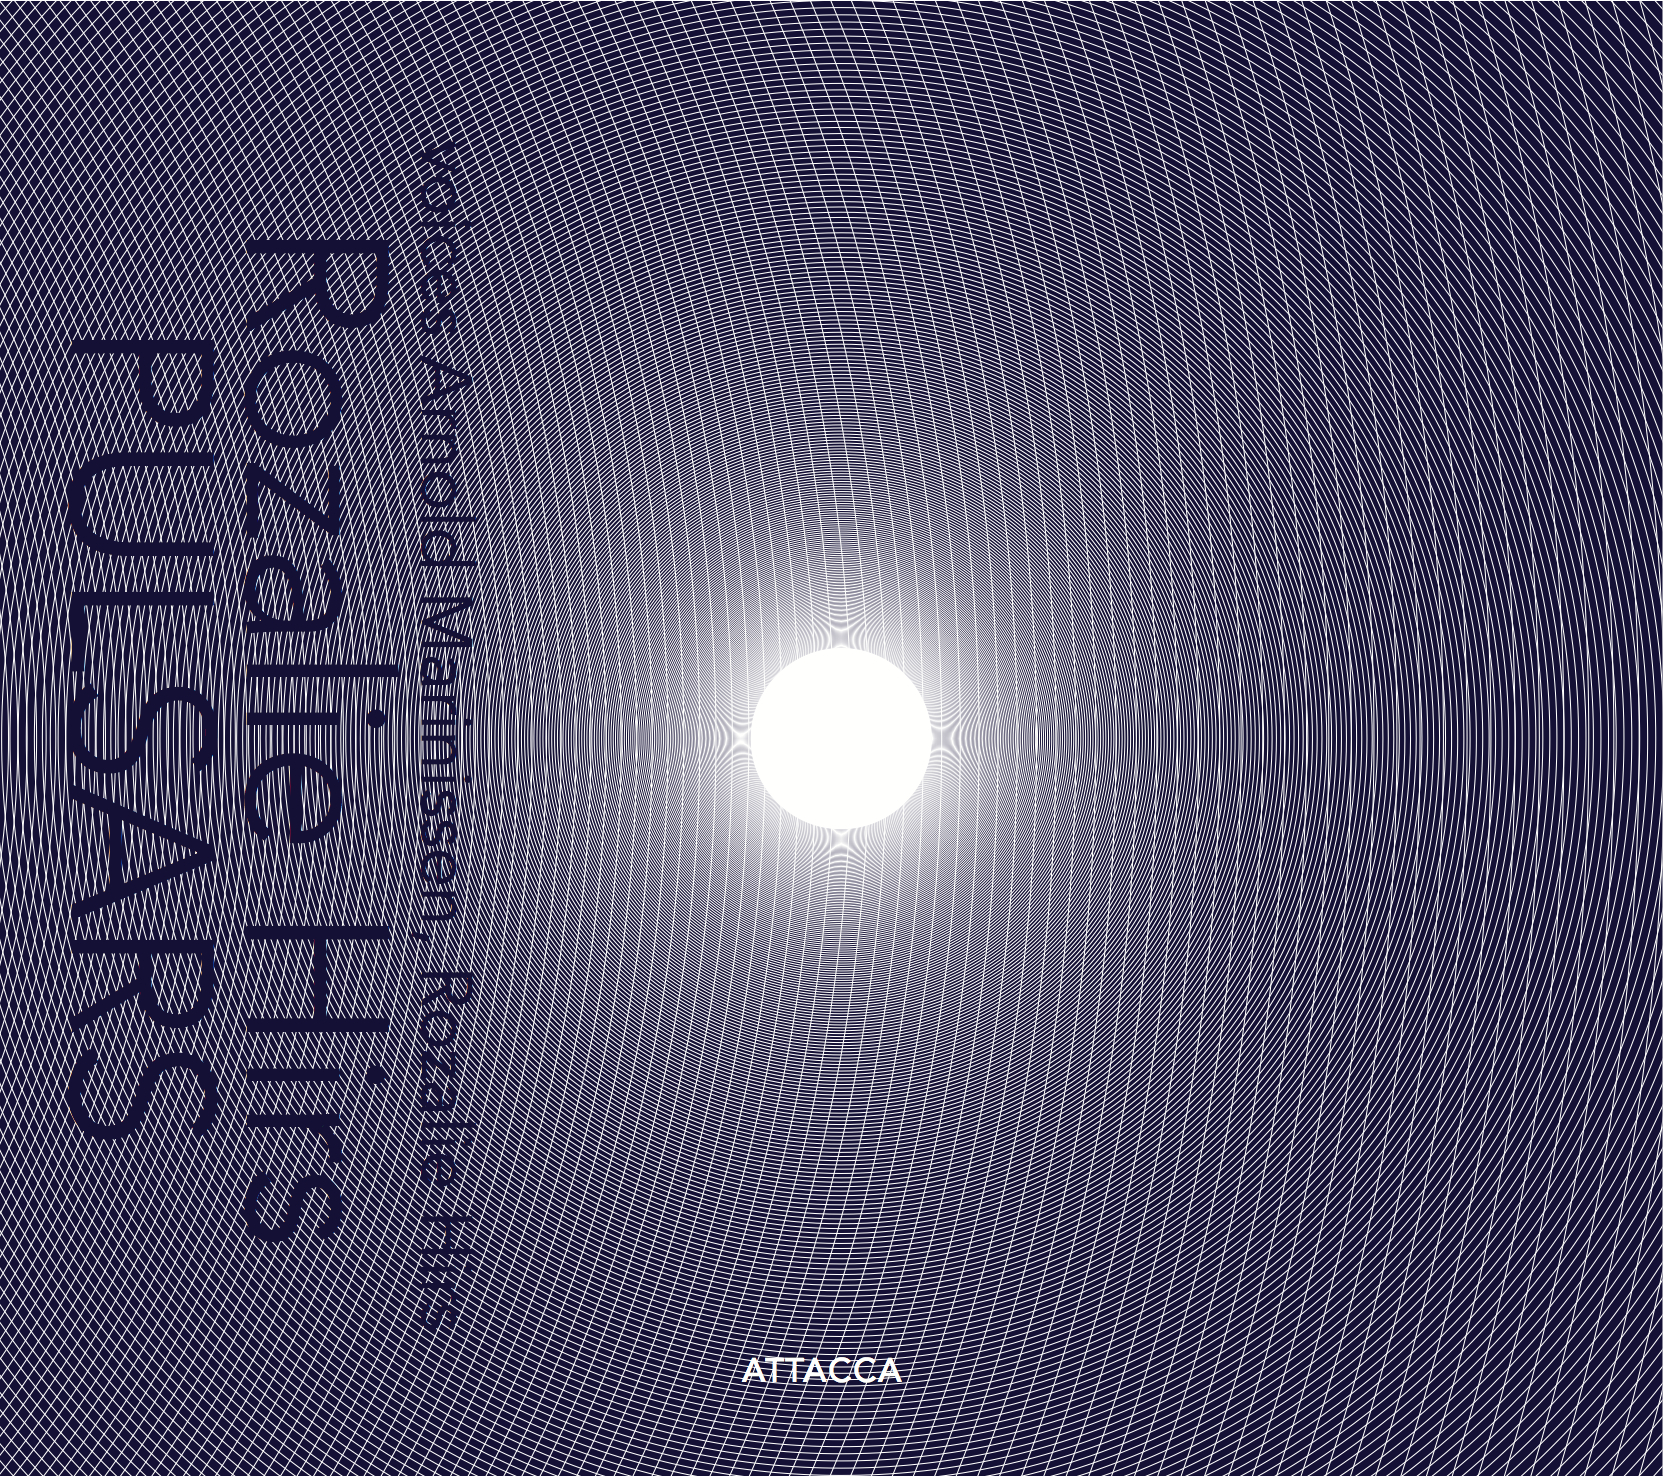 pulsars (2010), november music – cd launch